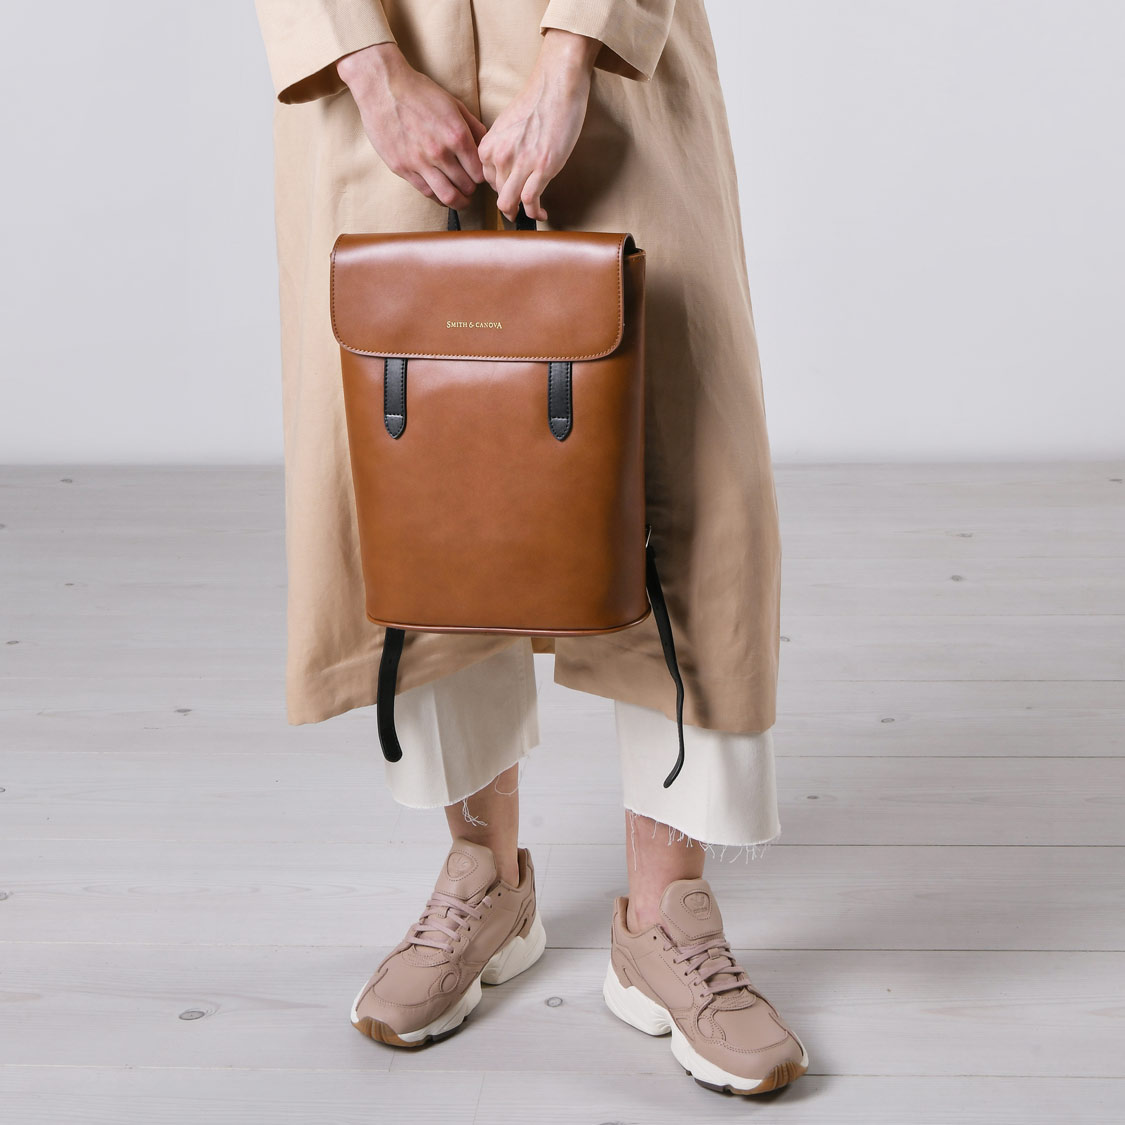 Smith & Canova - Josephine Flapover Backpack Tan